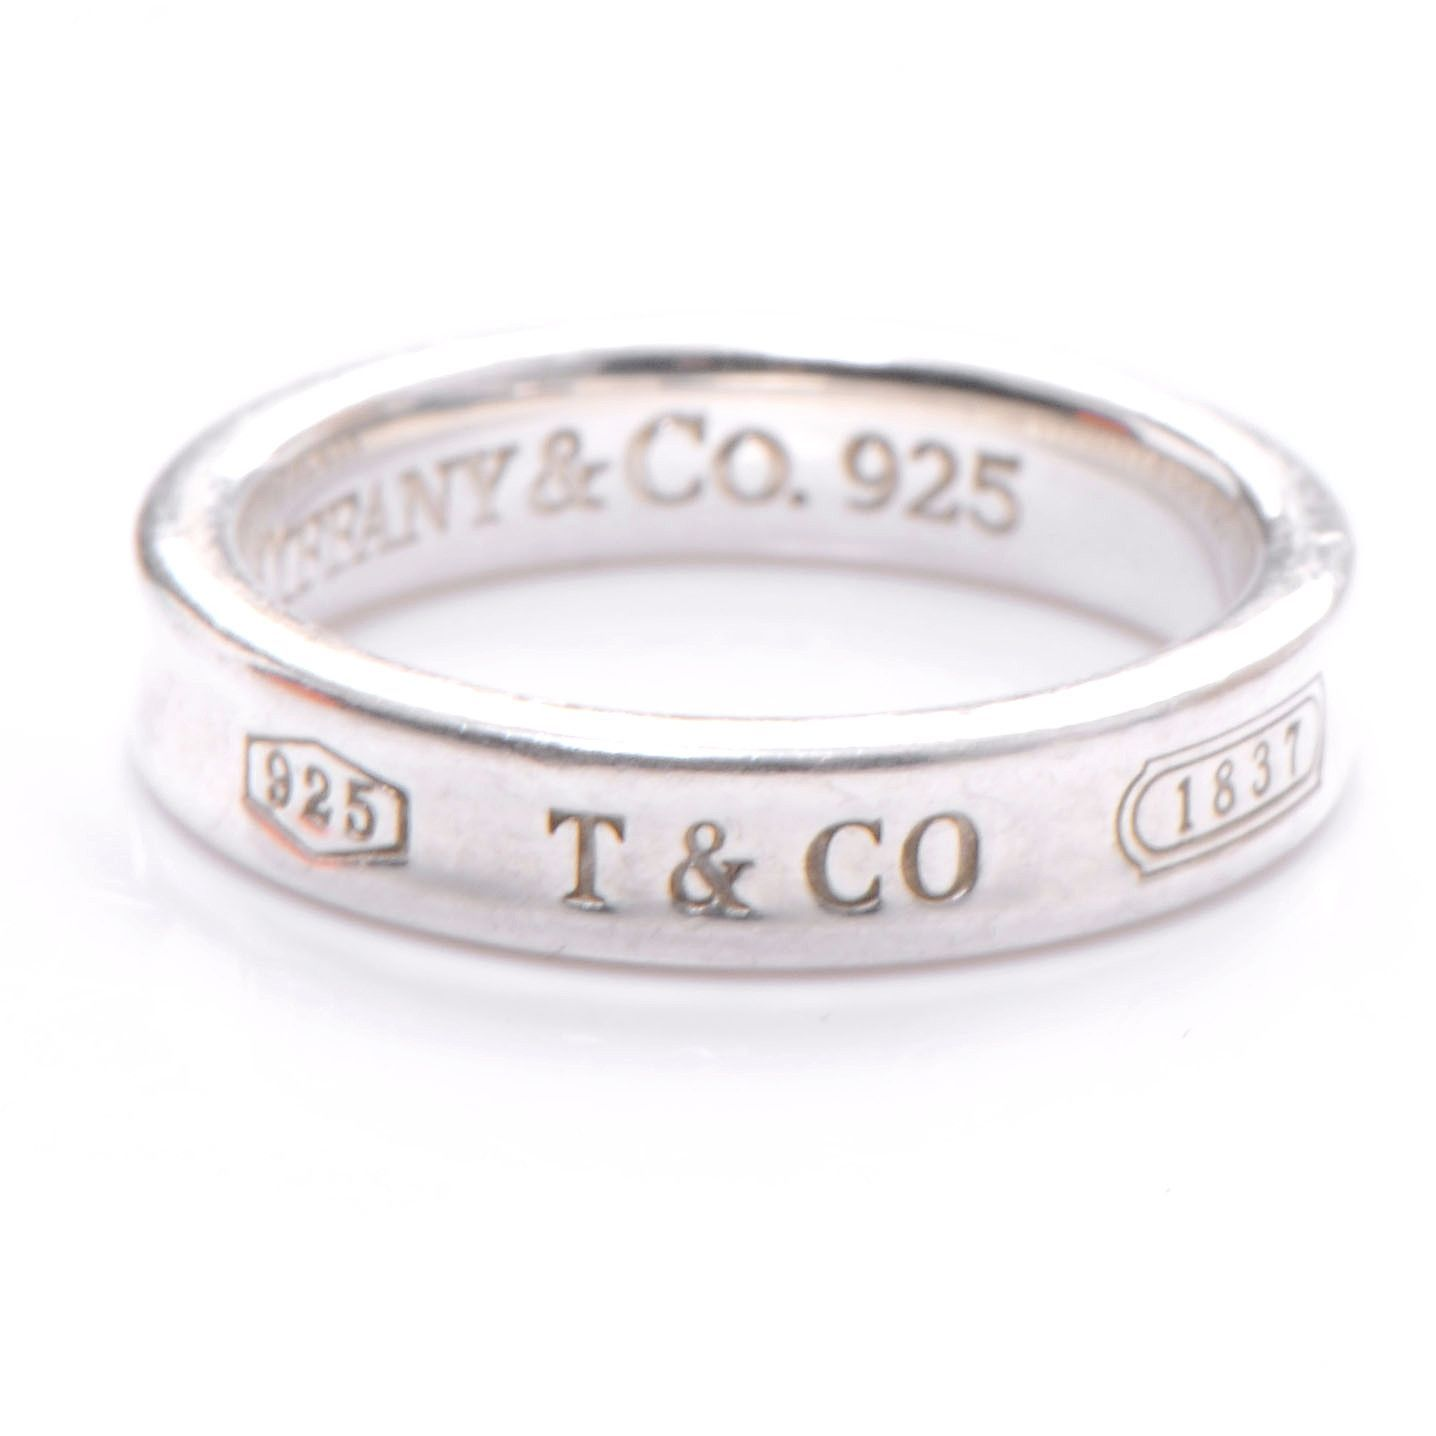 Tiffany and Co 1837 Sterling Silver Ring